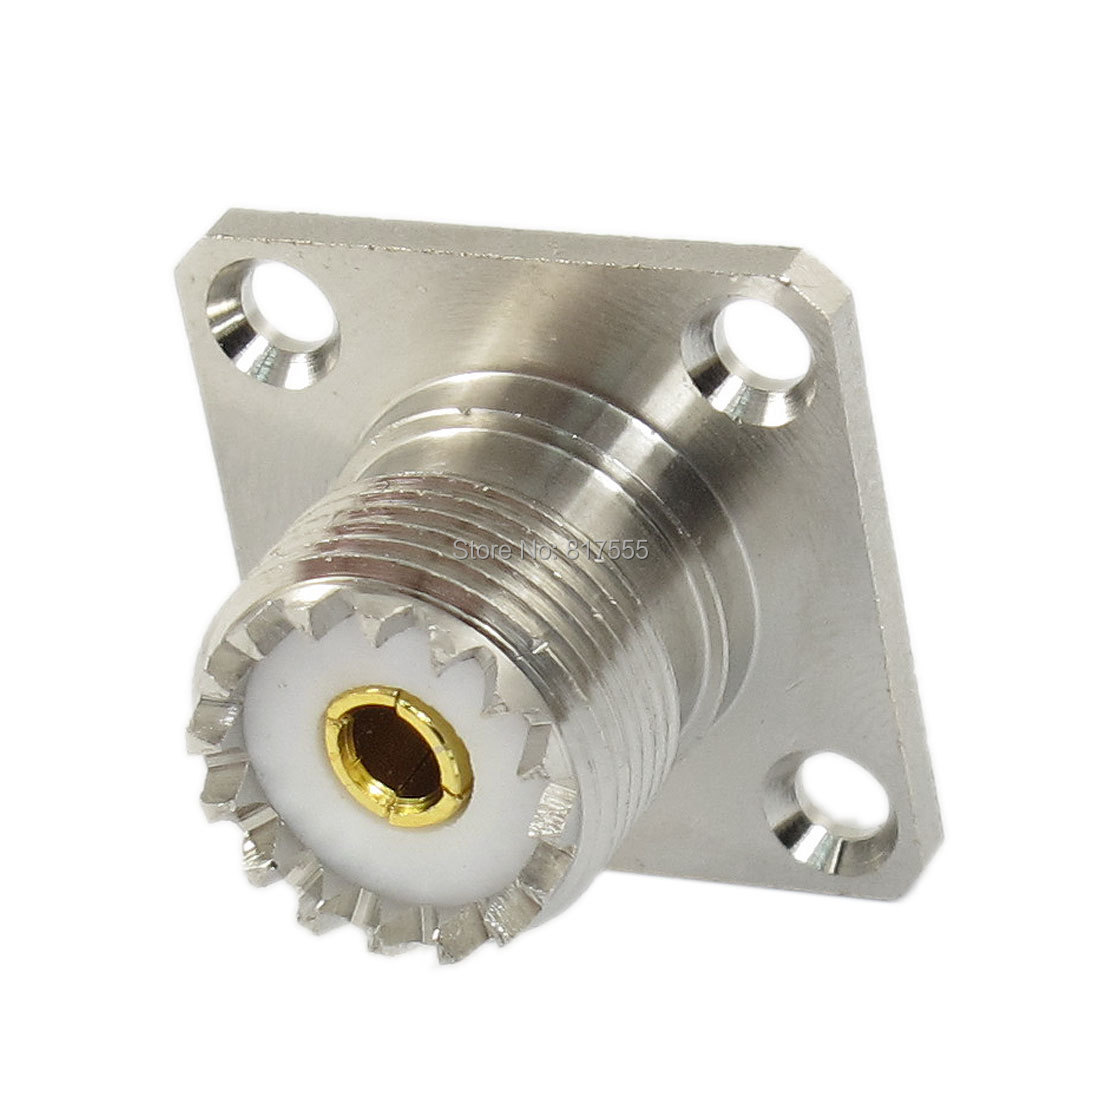 UHF Female SO239 Panel Chassis Mount Flange Deck Mount Solder Cup RF Connector Discount 50(China (Mainland))